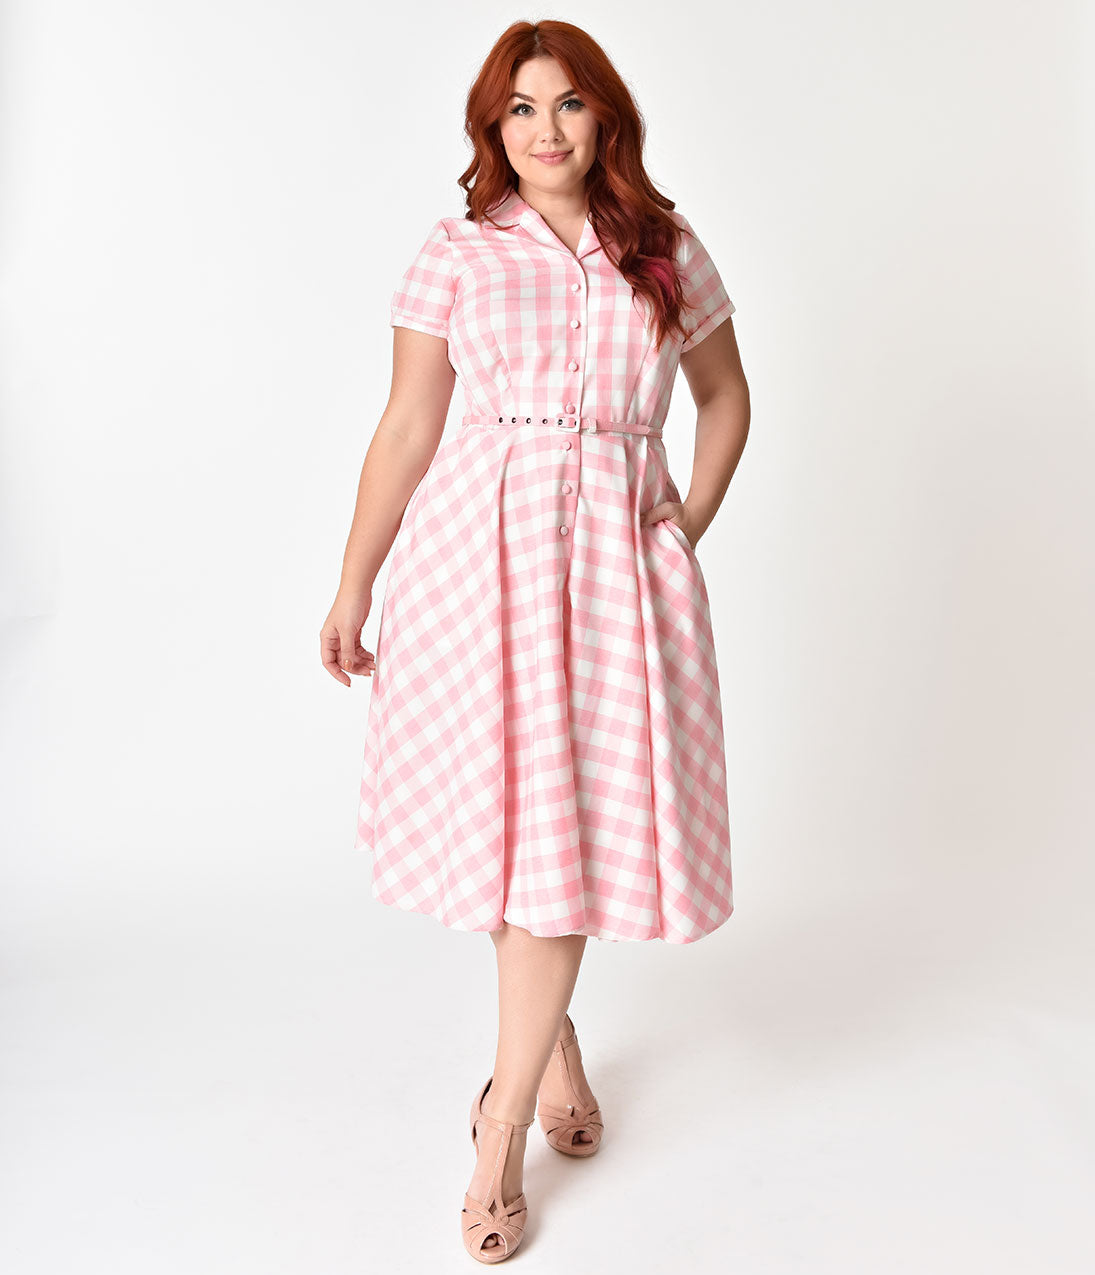 1950s Plus Size Fashion & Clothing History Unique Vintage Plus Size 1950S Style Light Pink  White Gingham Alexis Swing Dress $98.00 AT vintagedancer.com